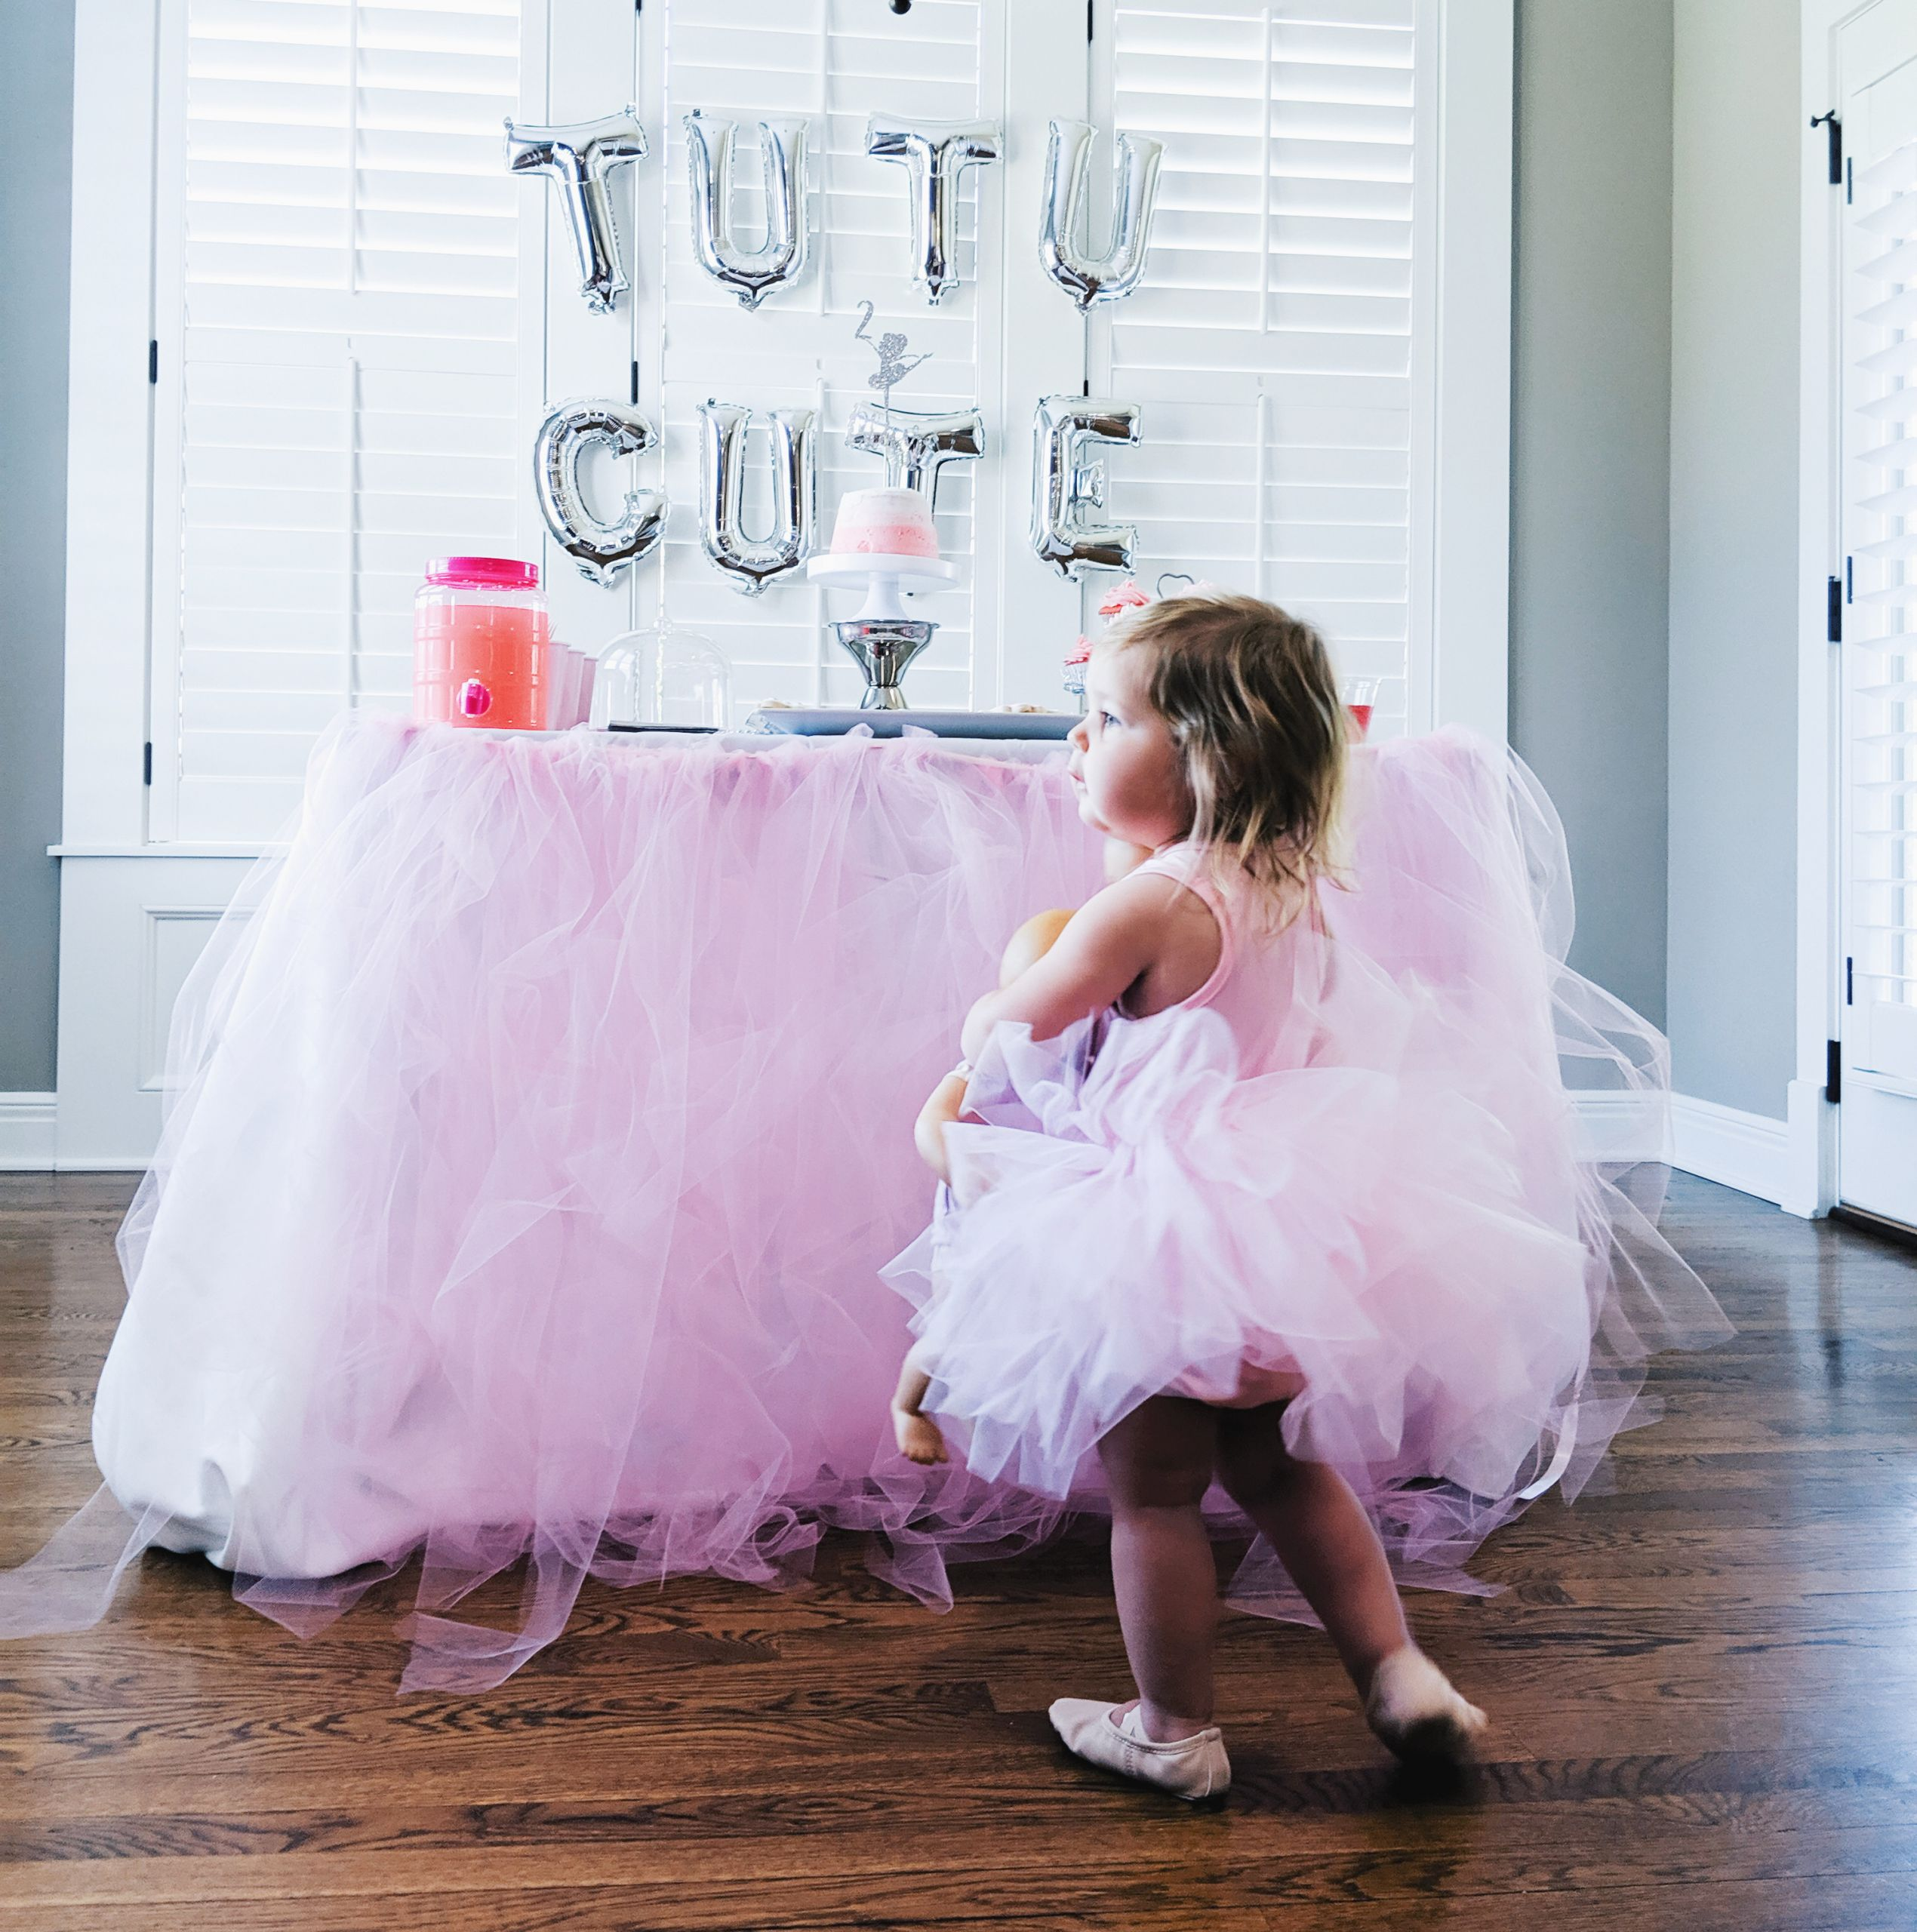 Two Years Old Birthday Party Ideas  Tutu Cute Birthday Party 2nd Birthday Party Ideas